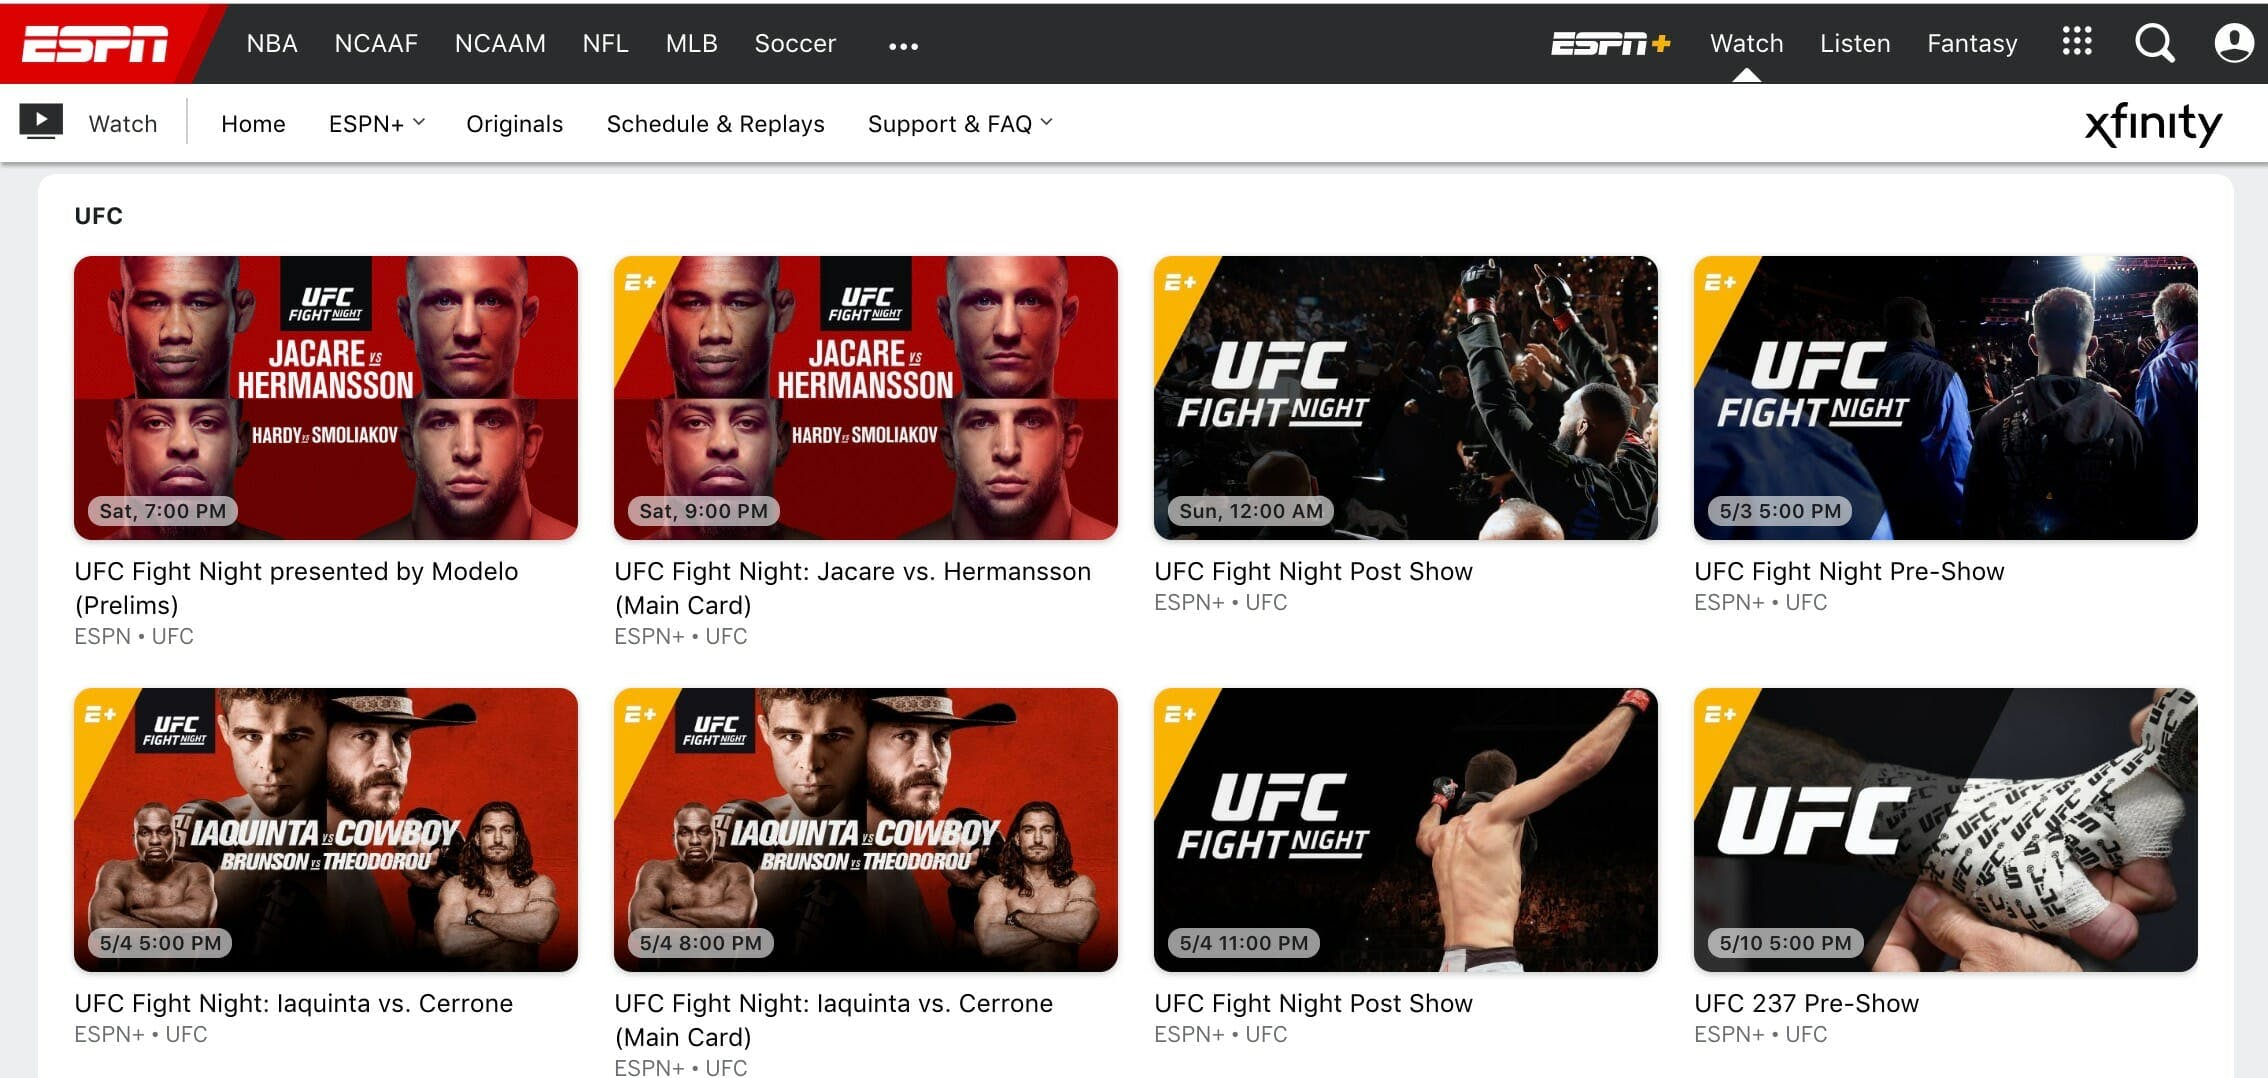 watch ufc espn plus